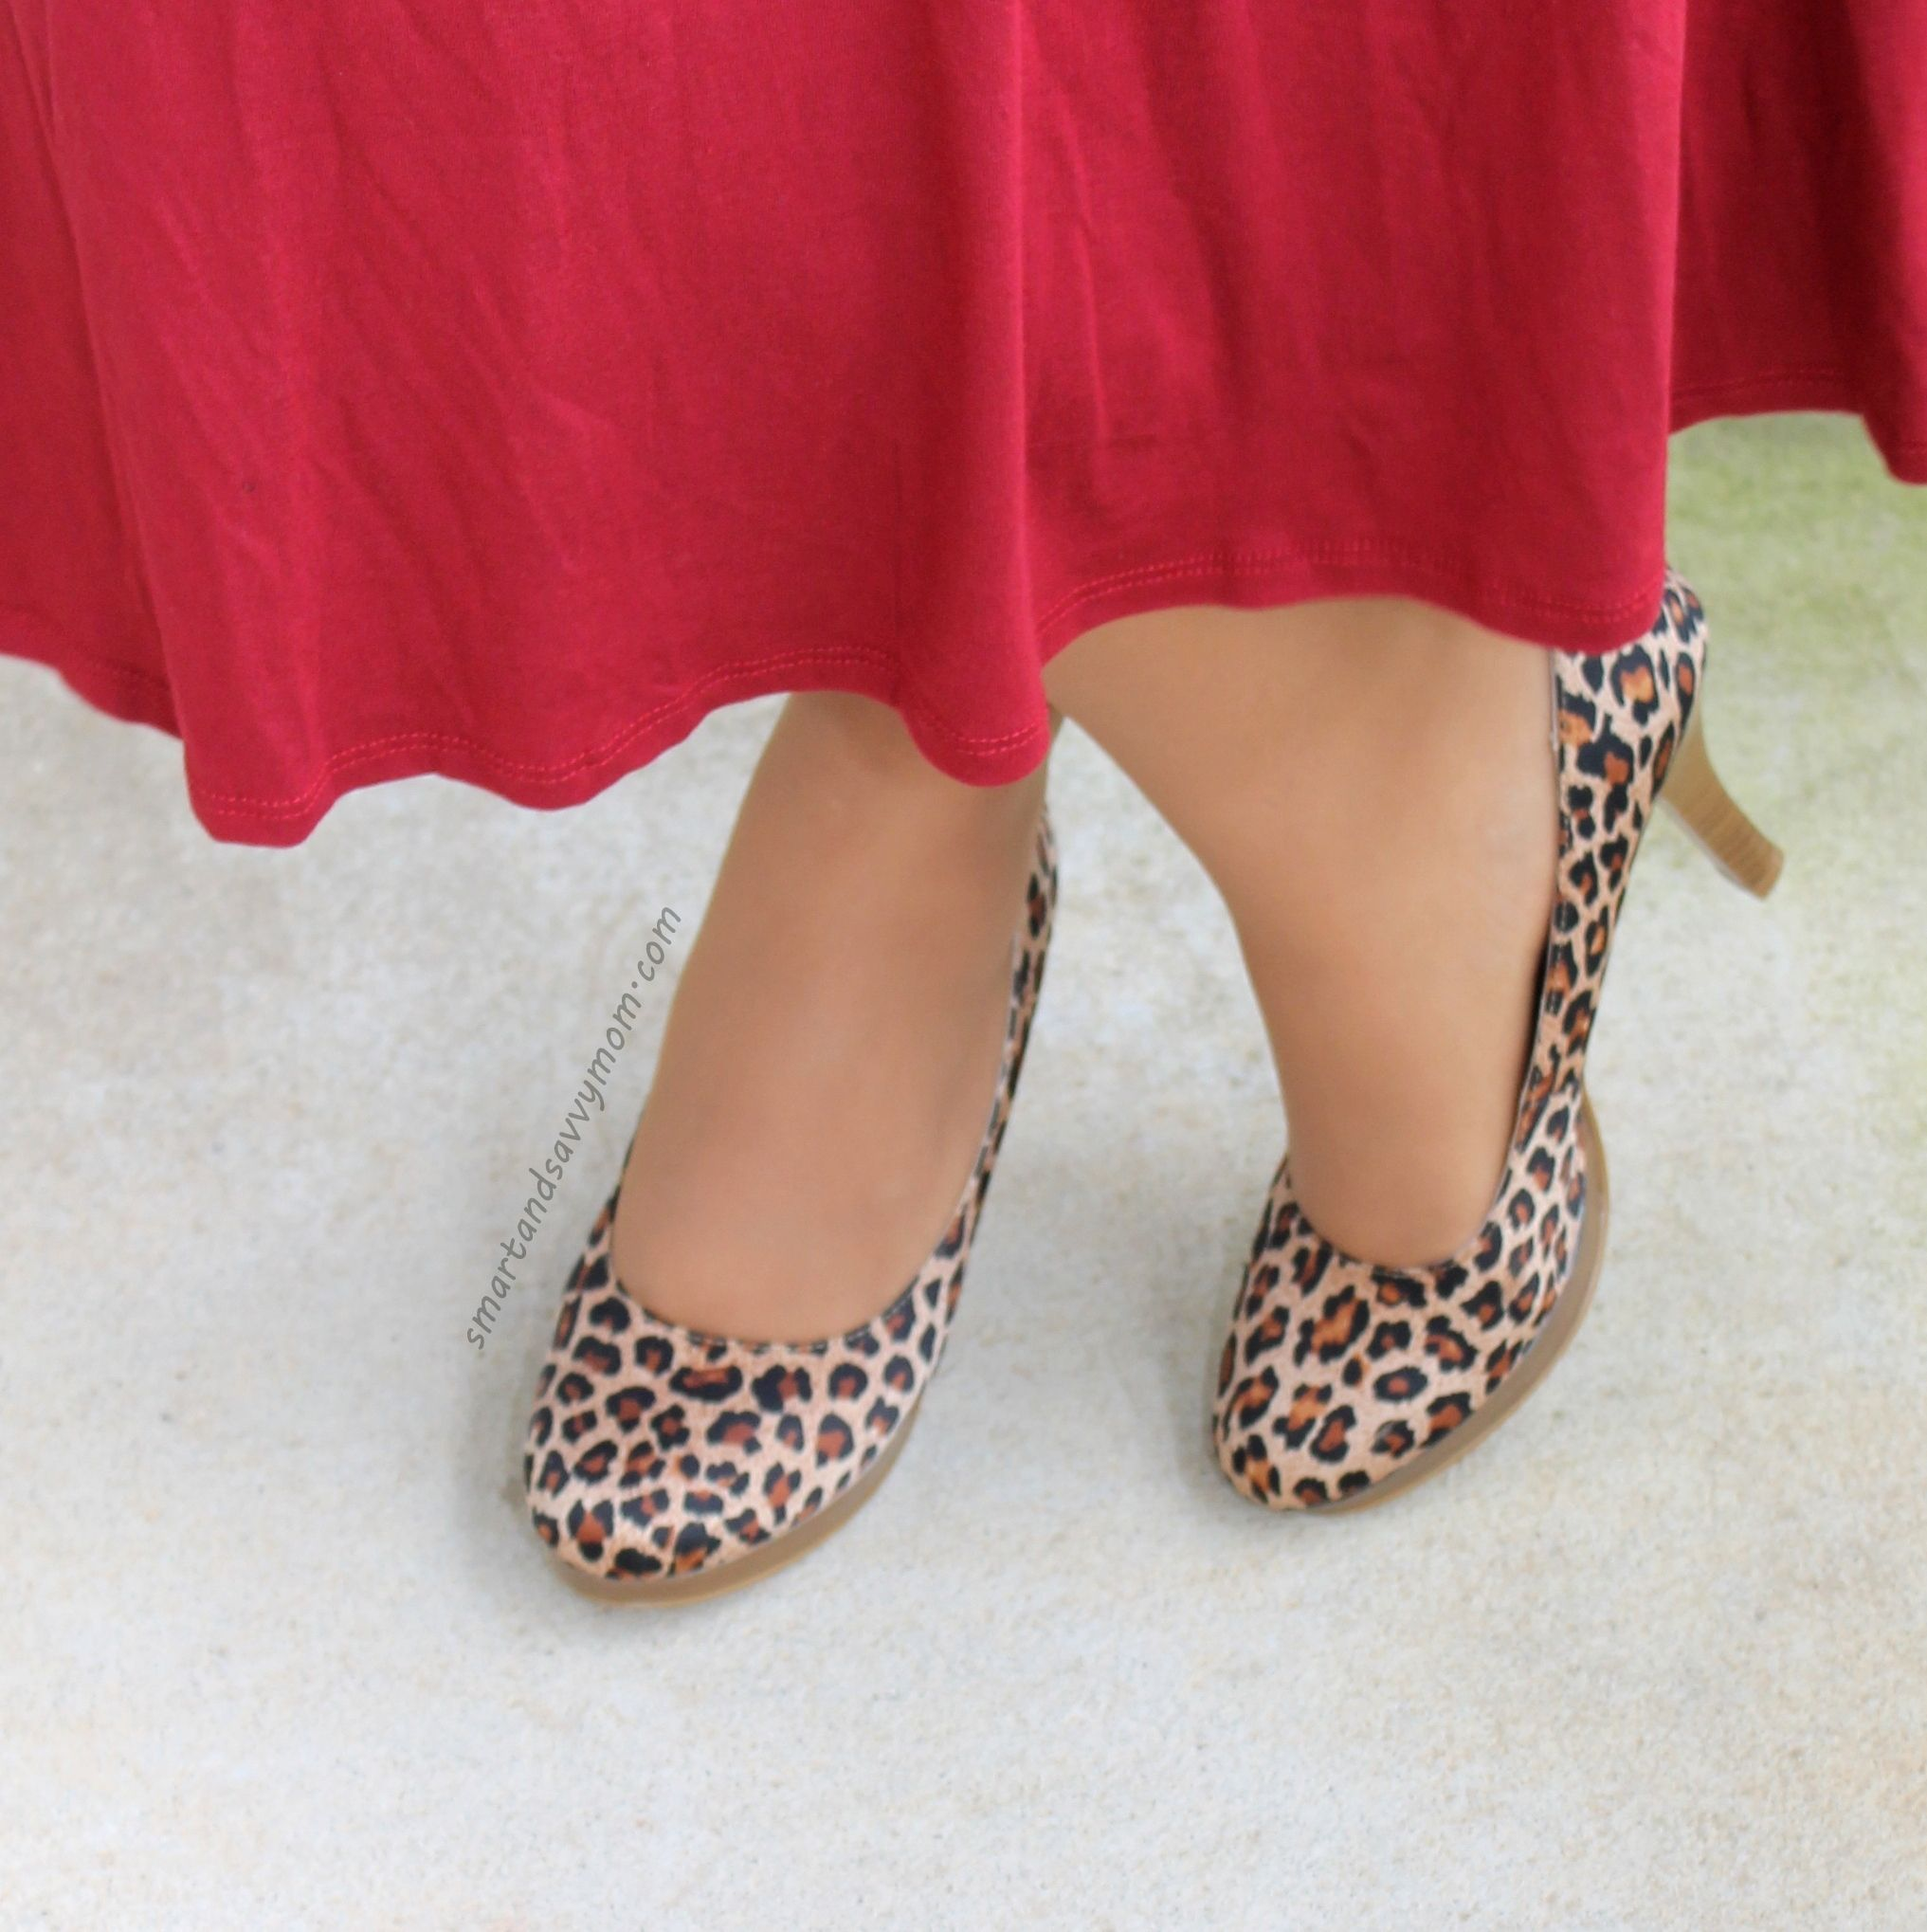 burgundy dress with leopard shoes